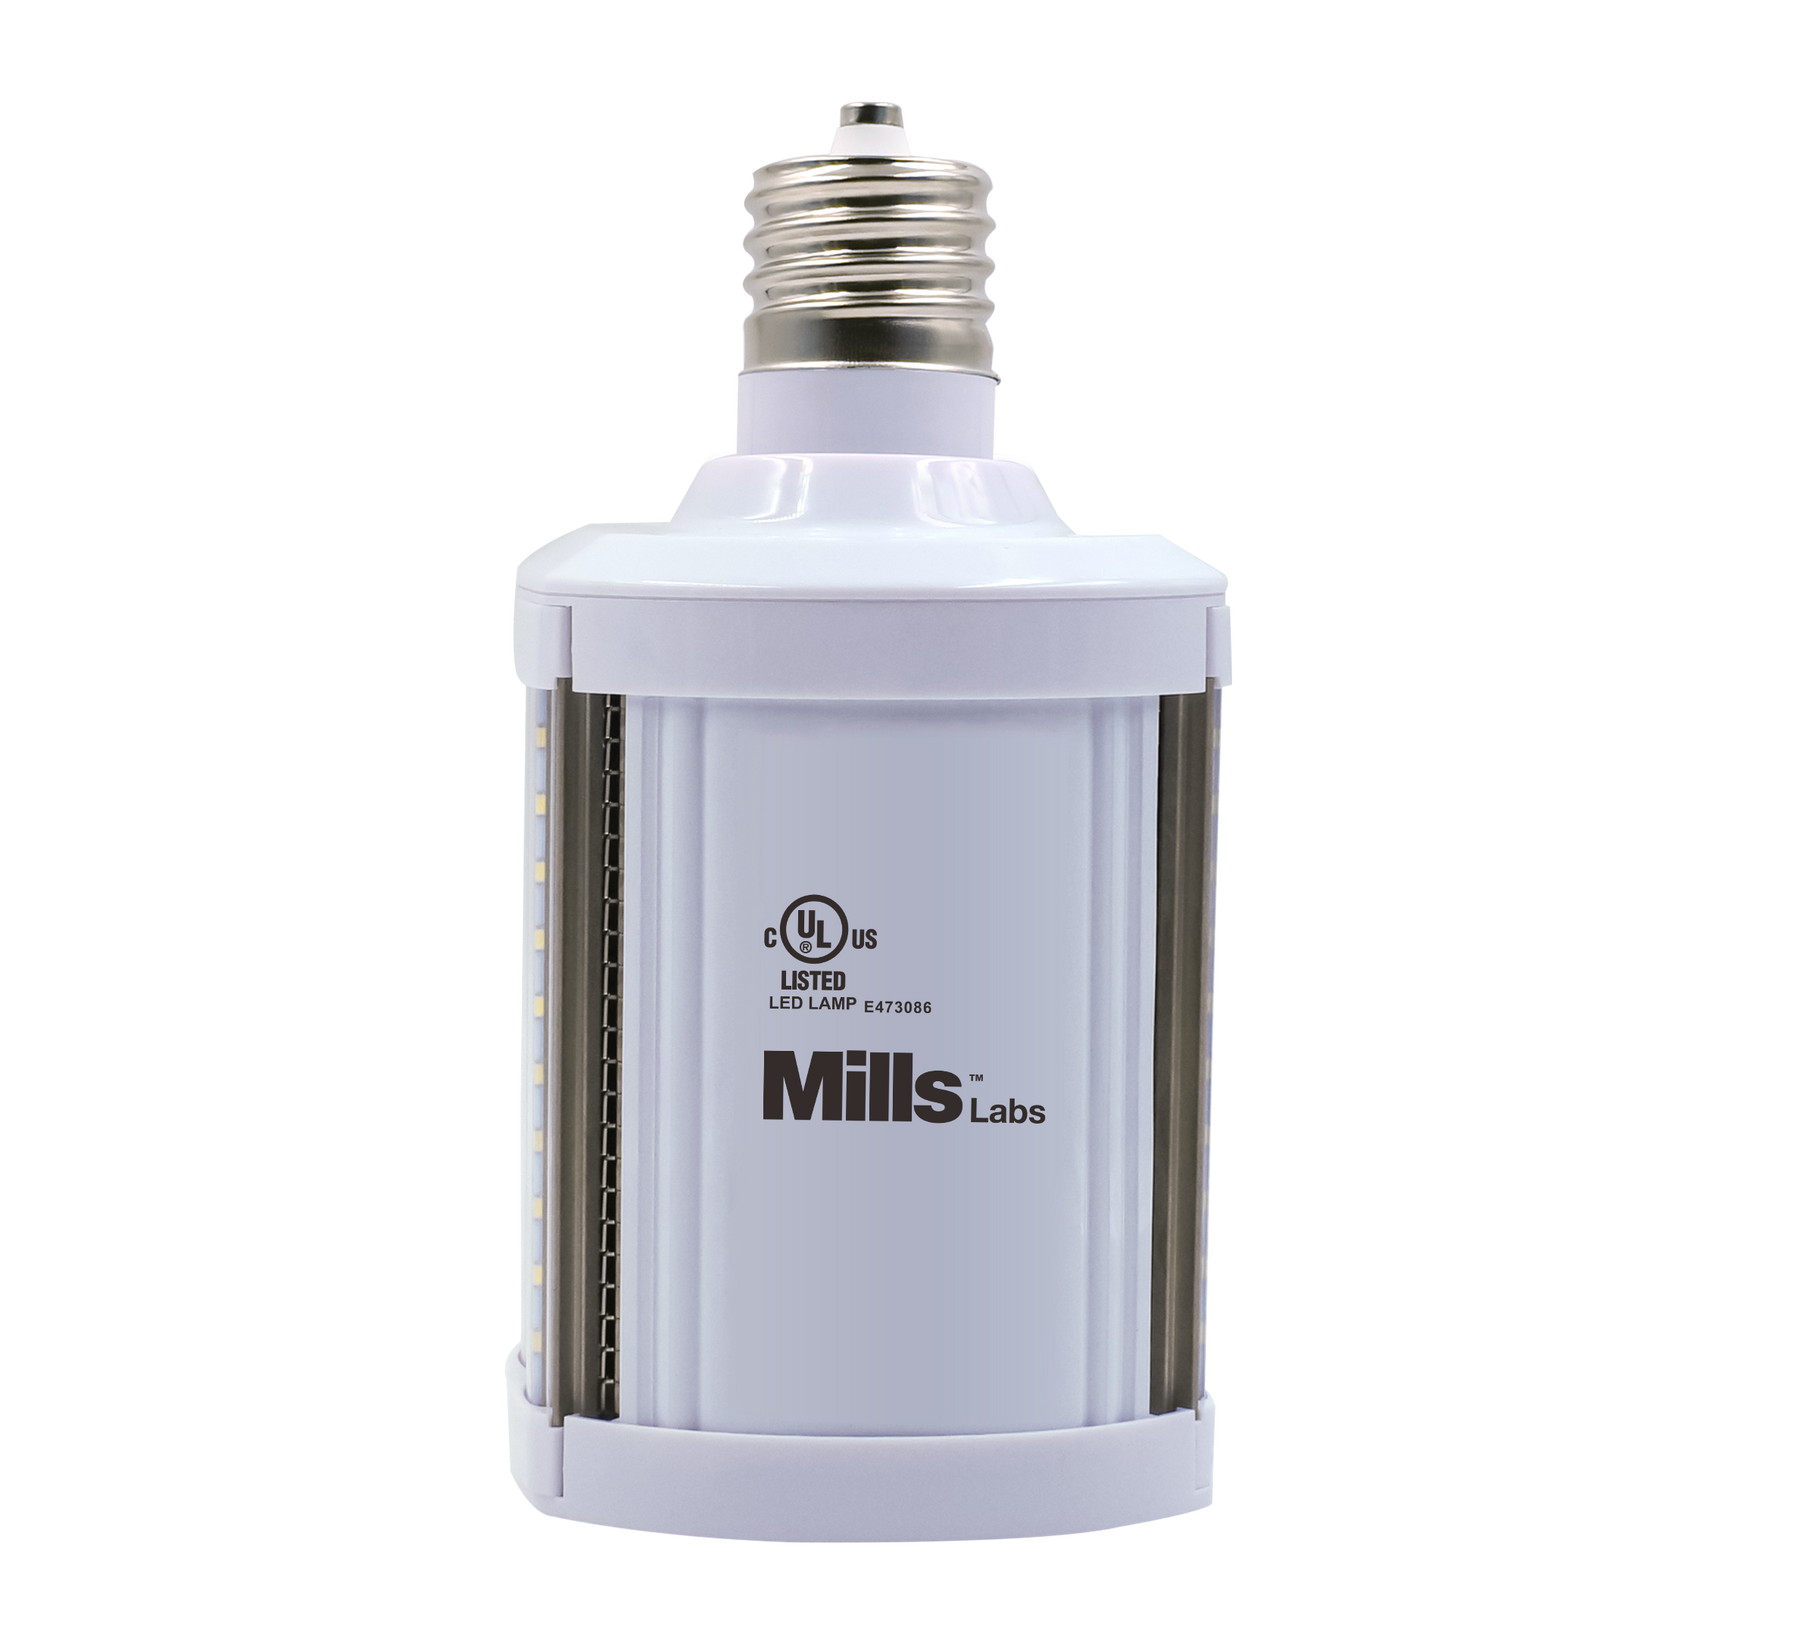 Mills Labs release 150 lumen per watt HID to LED Lamp, 120-277 Direct Wire